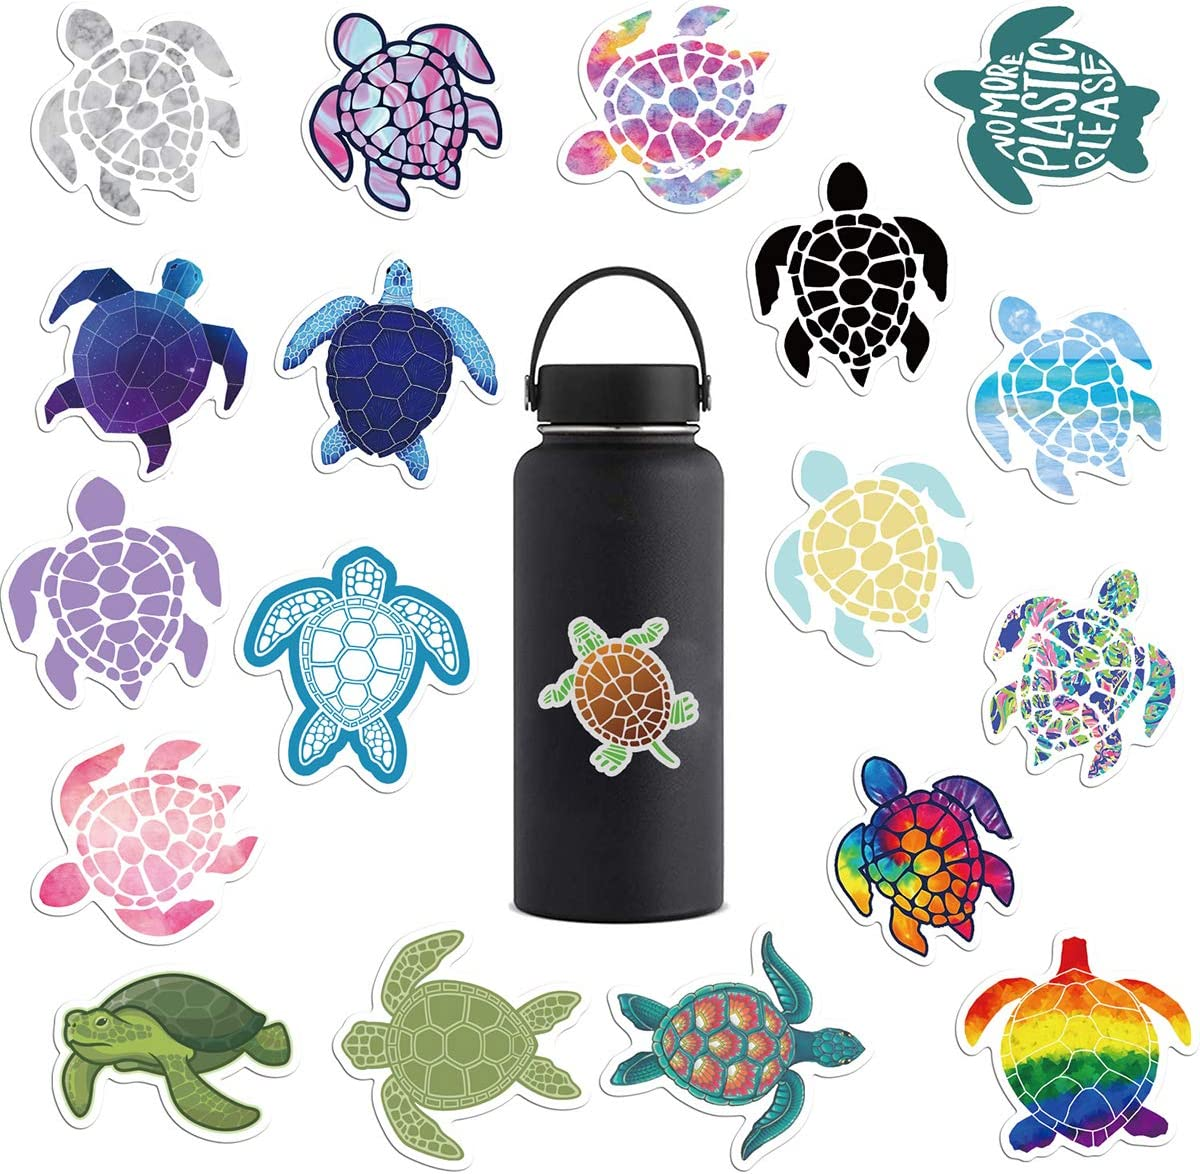 41 Pcs Stickers Cute Sea Turtle Waterproof Vinyl Sticker Pack for Hydro Flask Water Bottle and Office Laptop - Suitable for Kids Girls Teens Women(Sea Turtle)